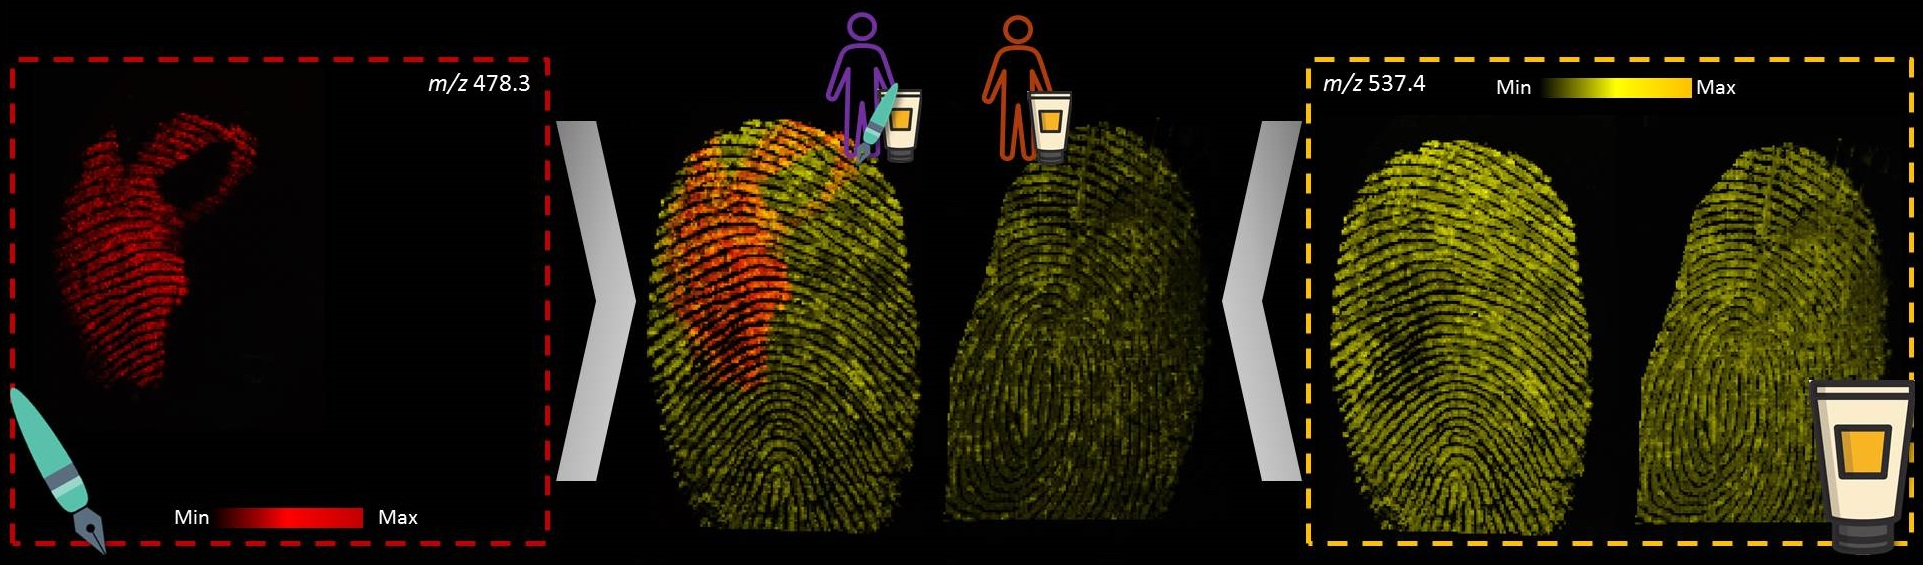 Figure 2.  MALDI MSI analysis of fingerprints was able to distinguish between Subject 1 who used both a blue ink pen ( m/z  478.3) and hand lotion ( m/z  537.4) during the day versus Subject 2 who only used hand lotion ( m/z  537.4).